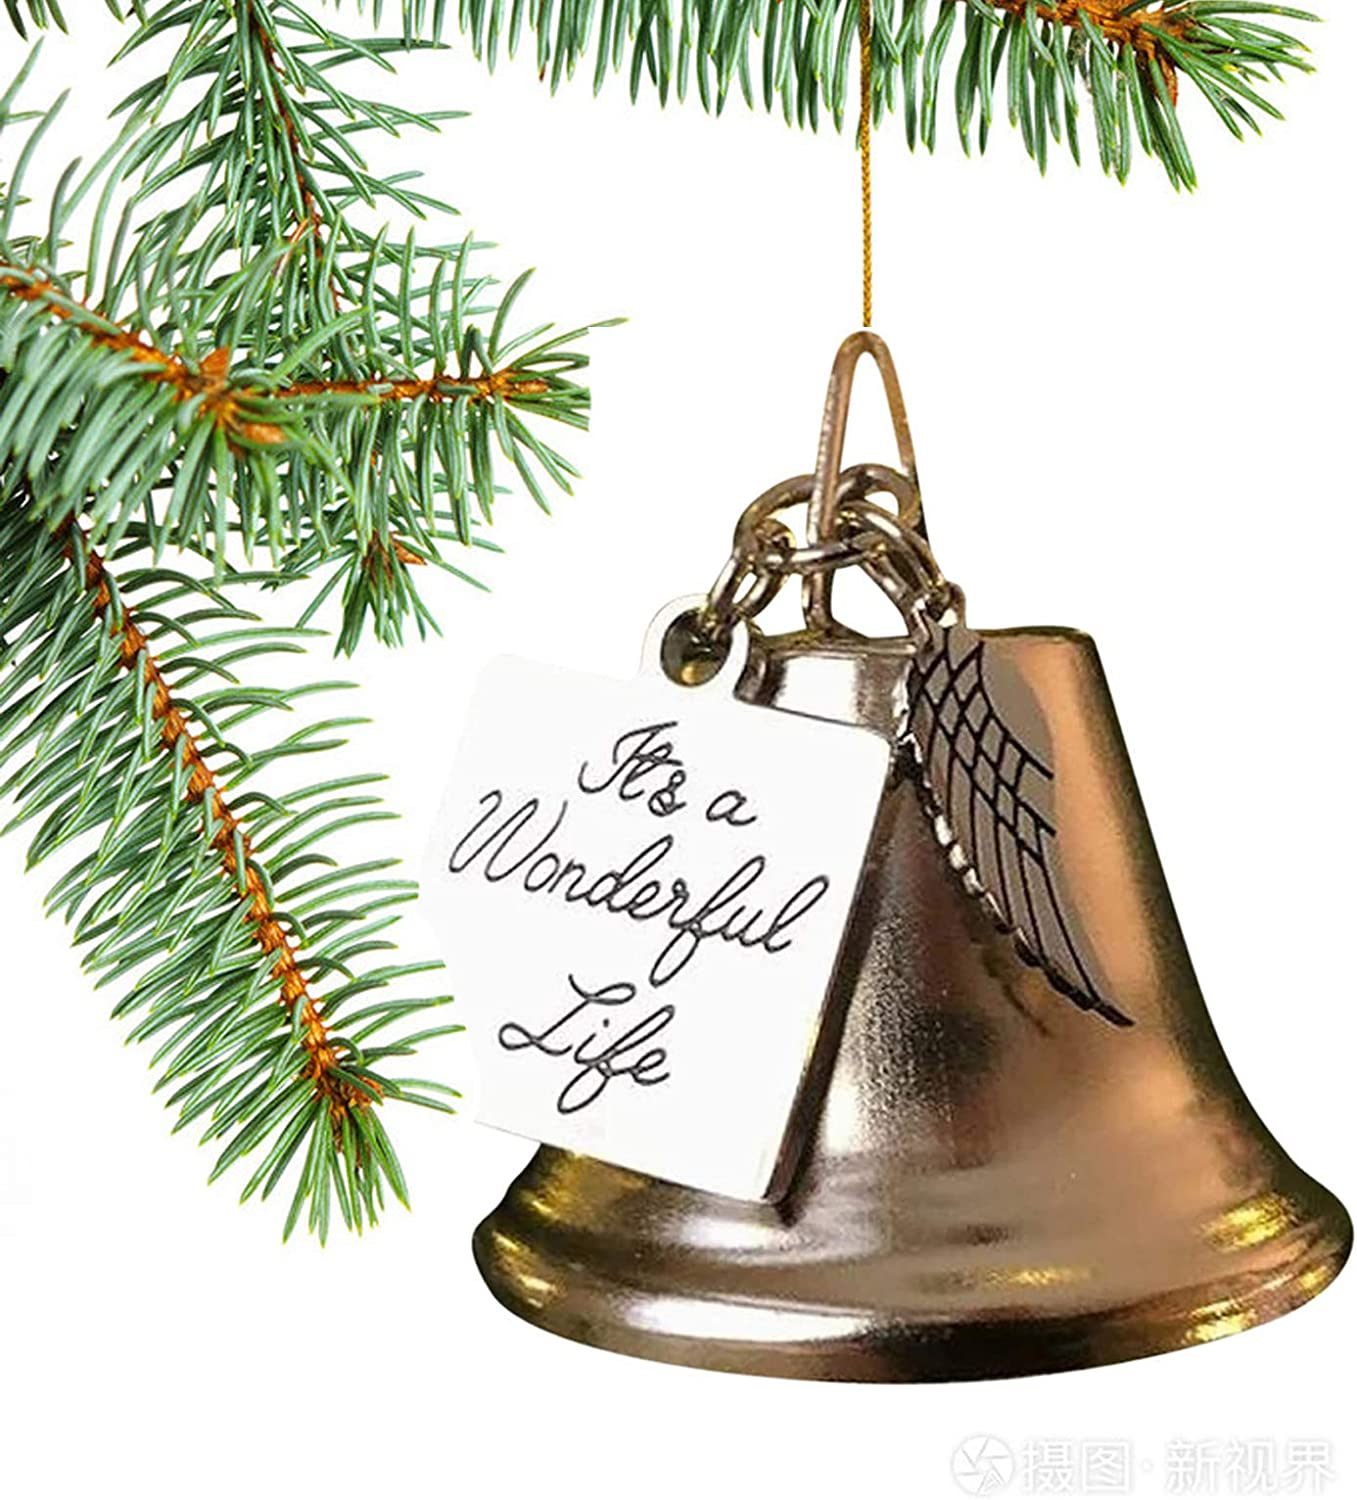 It's a Wonderful Life Christmas Bell Memorial Ornament Decorations - Stainless Steel Bell Ornaments